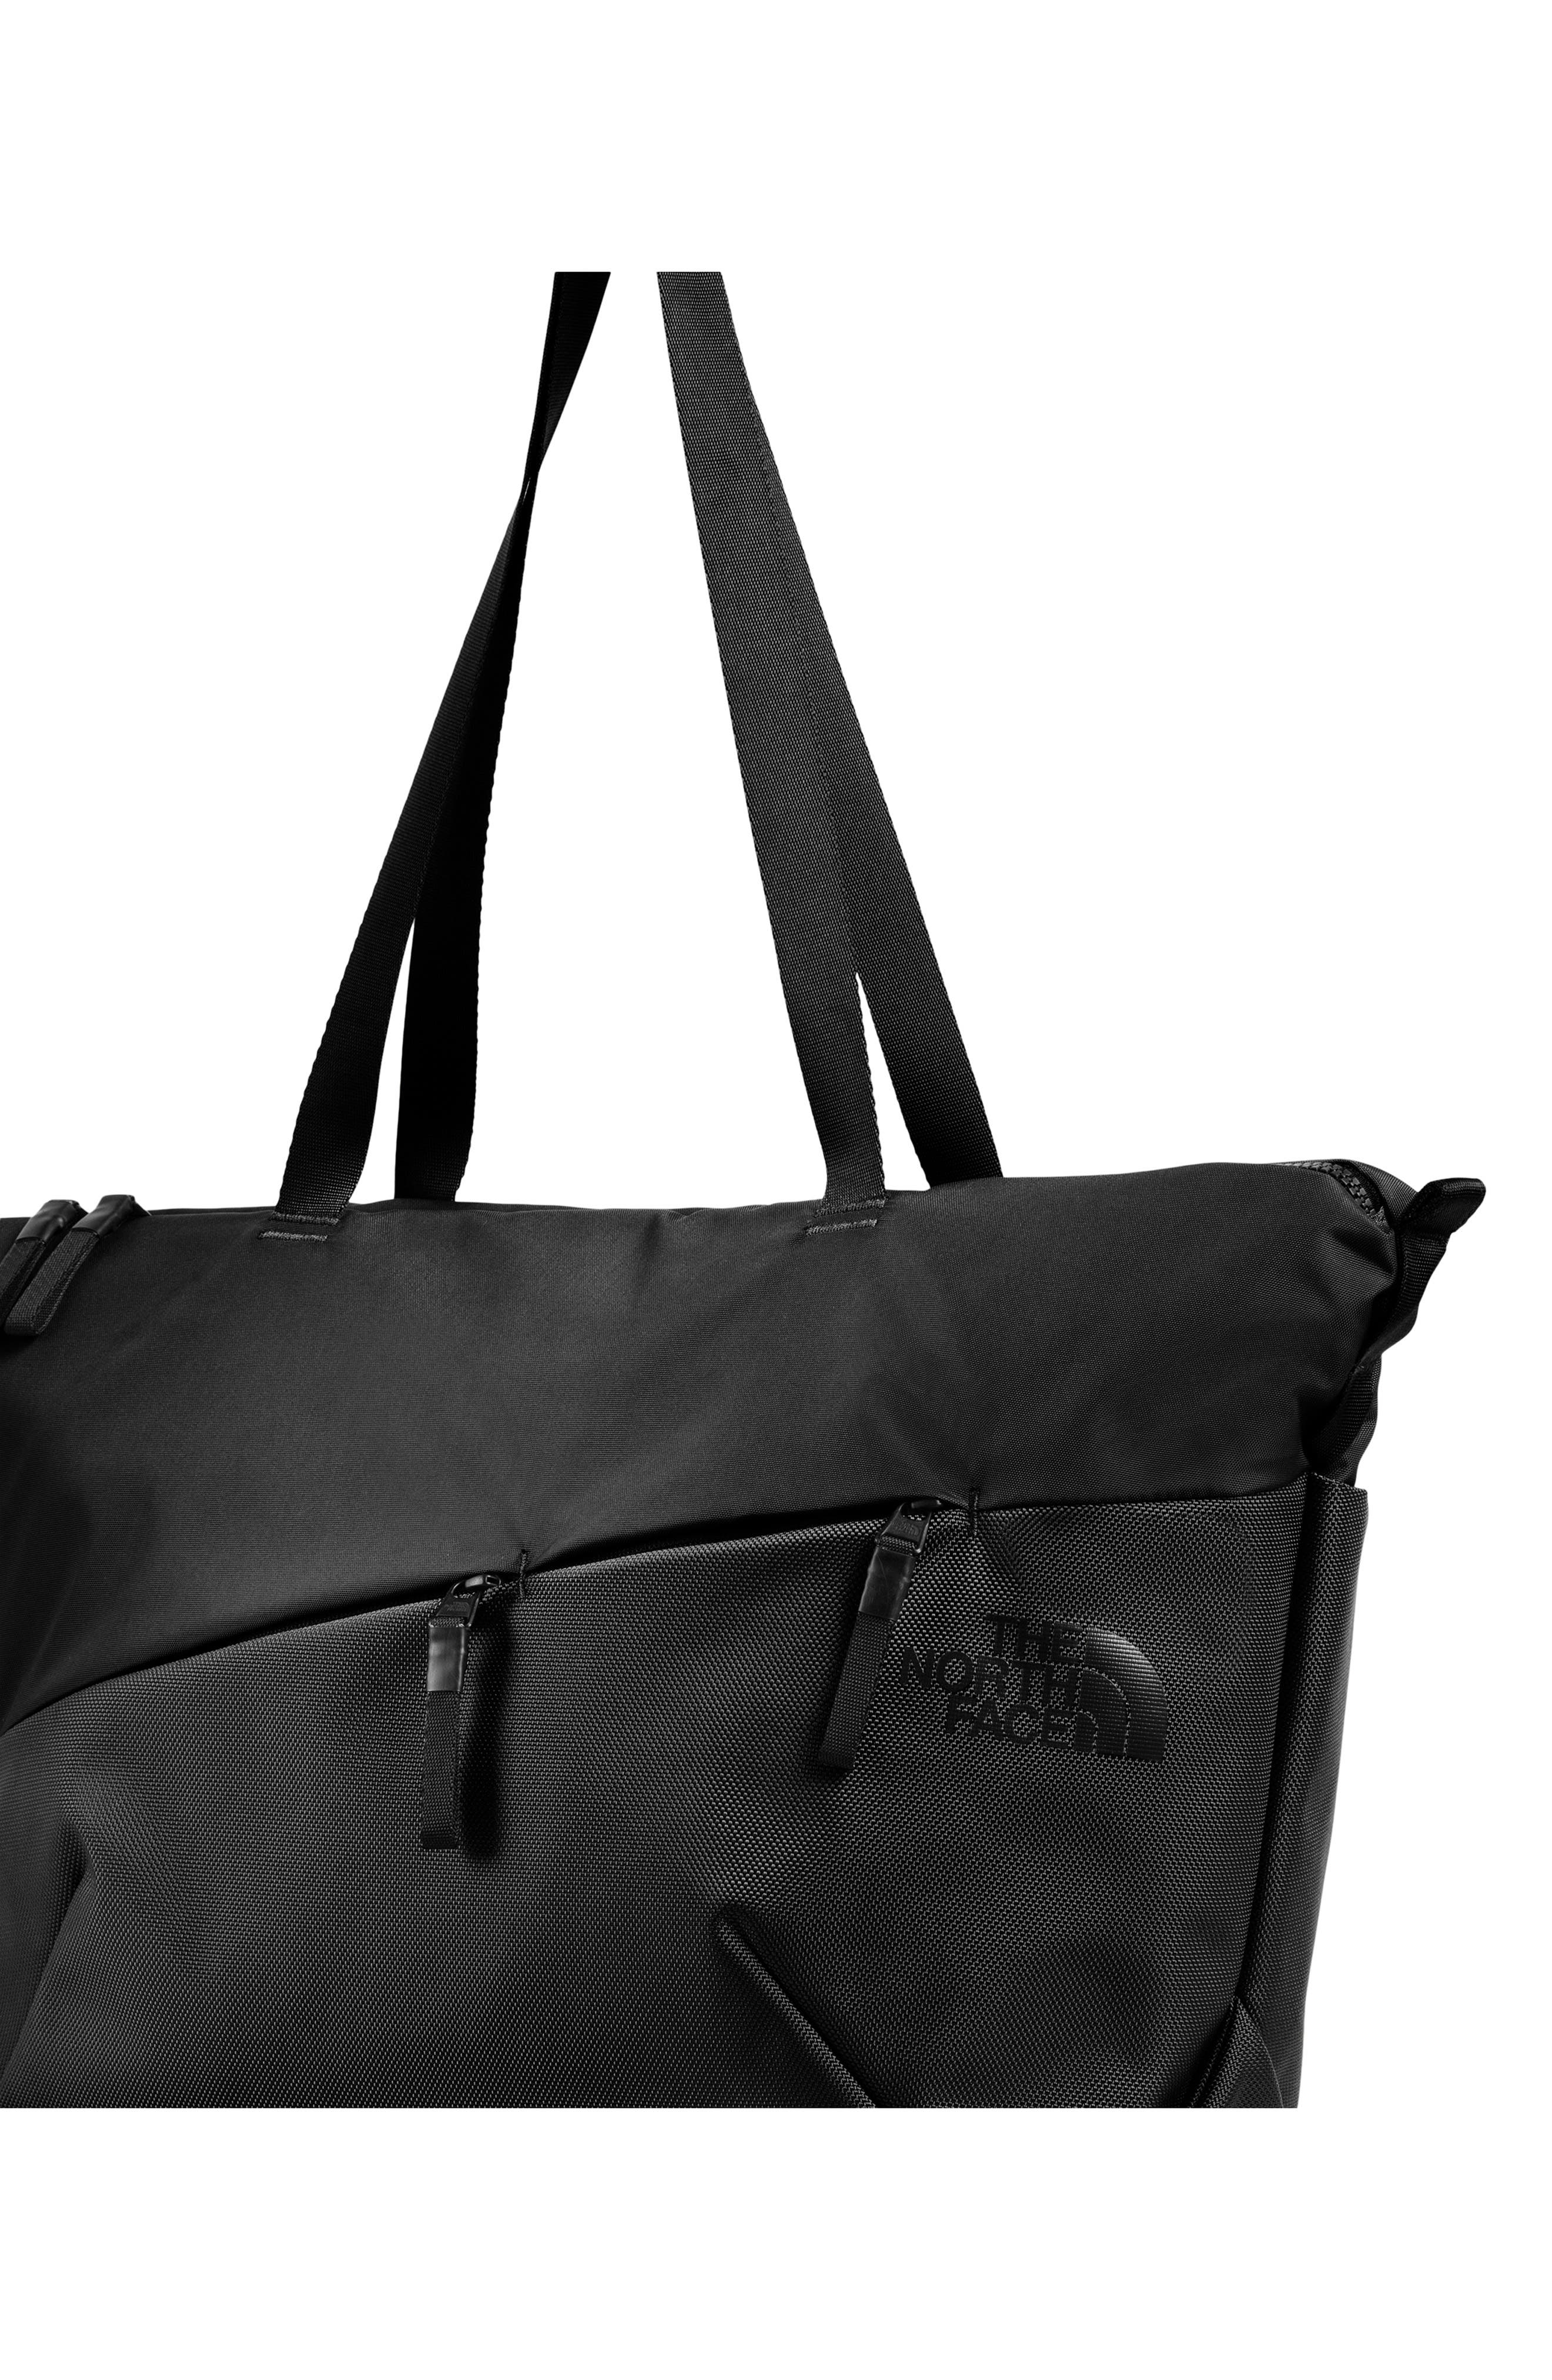 THE NORTH FACE, Electra Large Tote, Alternate thumbnail 3, color, 001